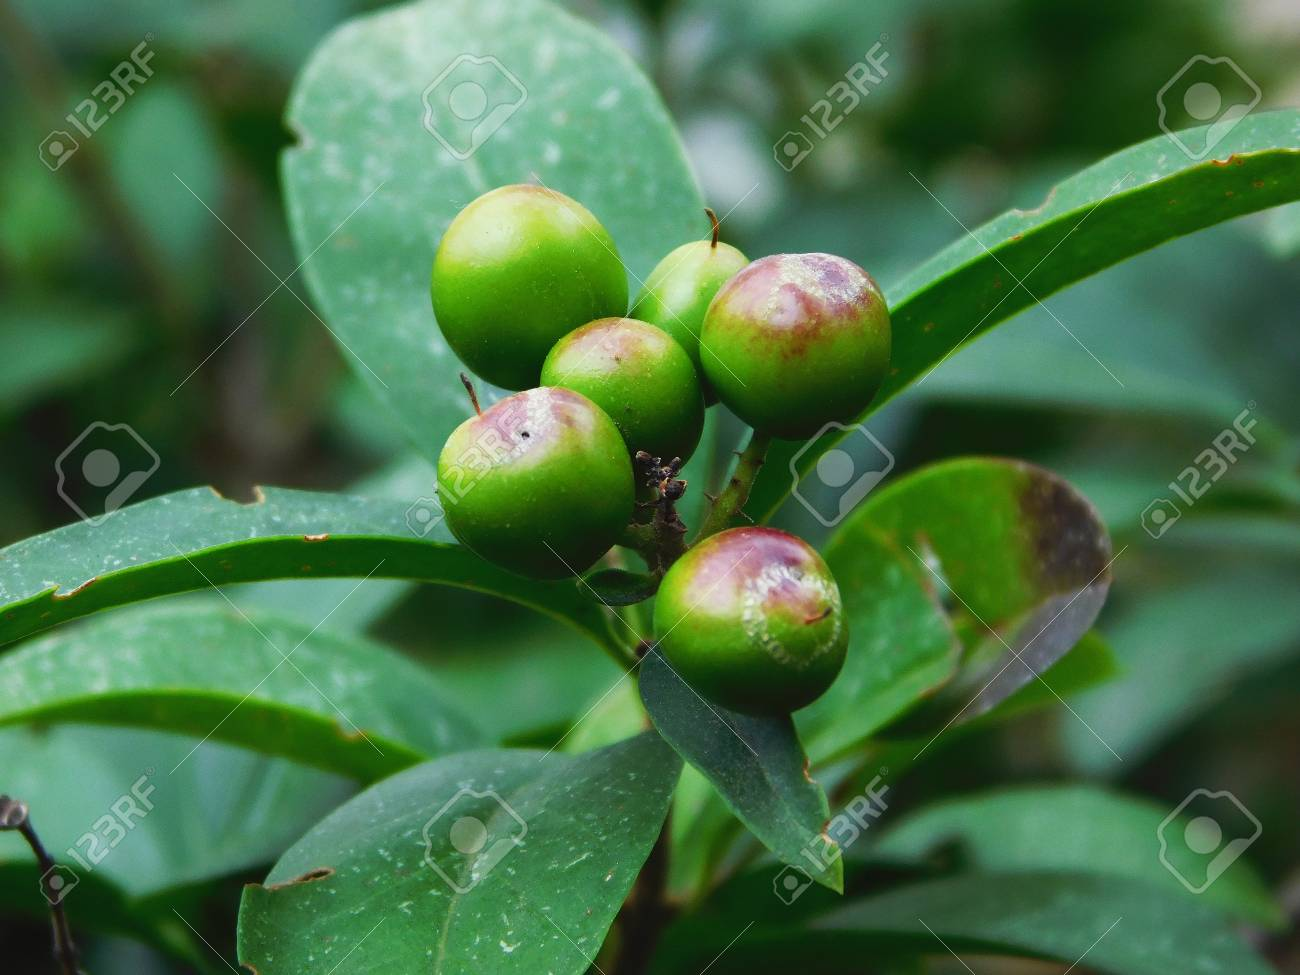 A Bunch Of Bay Laurel Tree Fruits Stock Photo Picture And Royalty Free Image Image 92656378